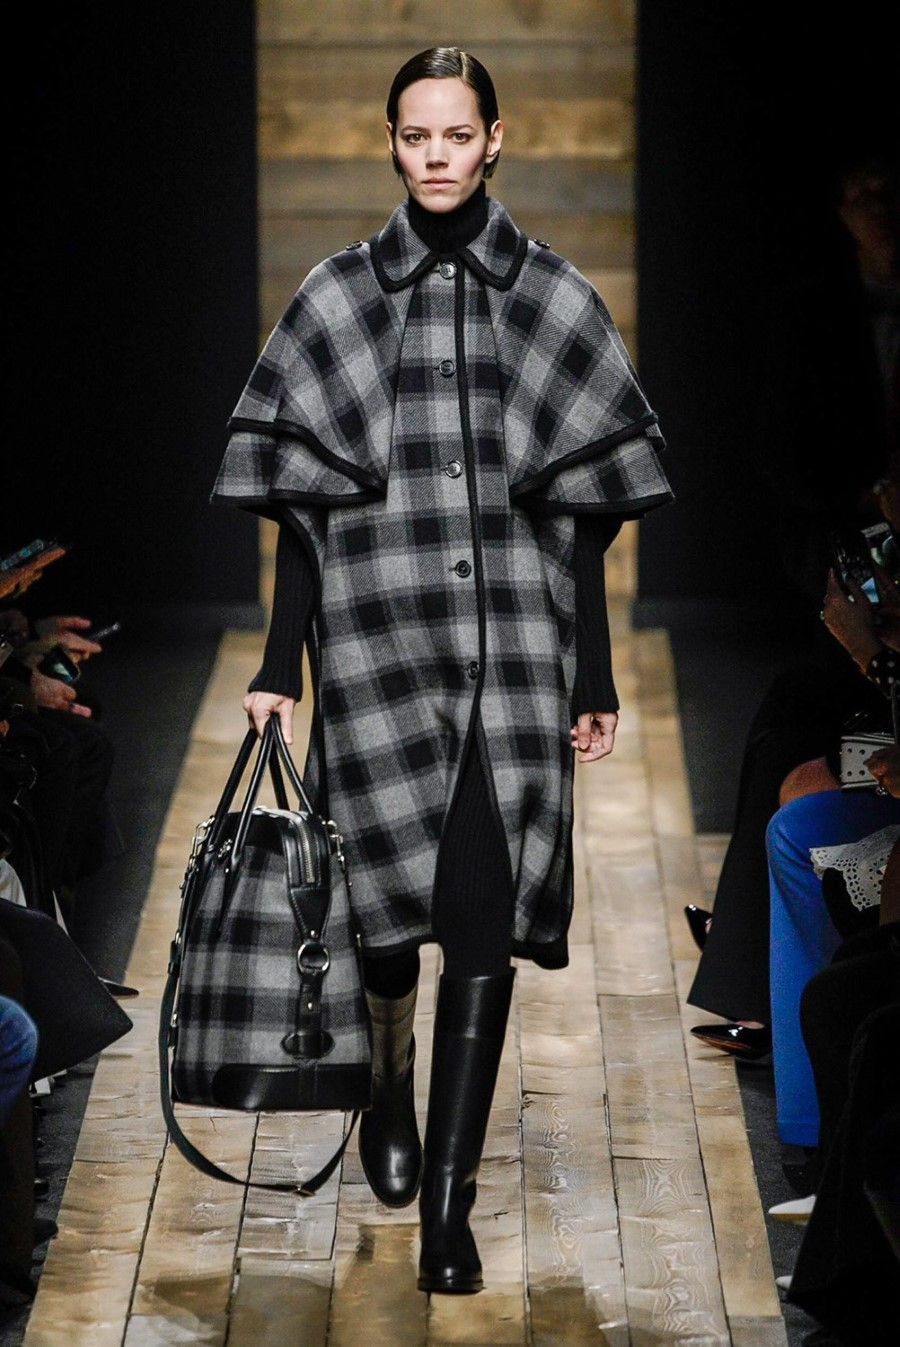 Michael Kors Collection - Fall Winter 2020 - New York Fashion Week